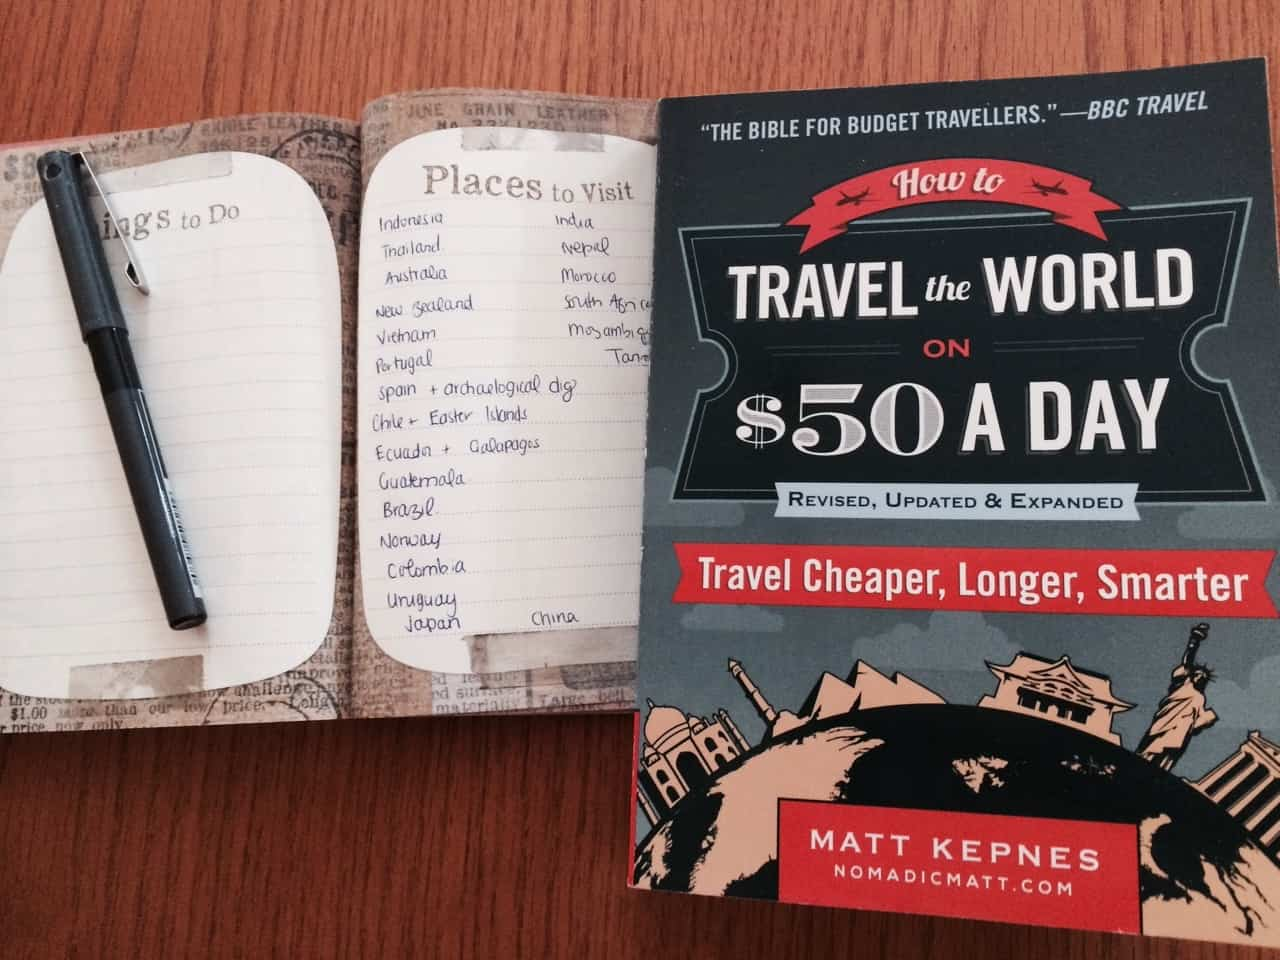 How to travel the world on 50 day